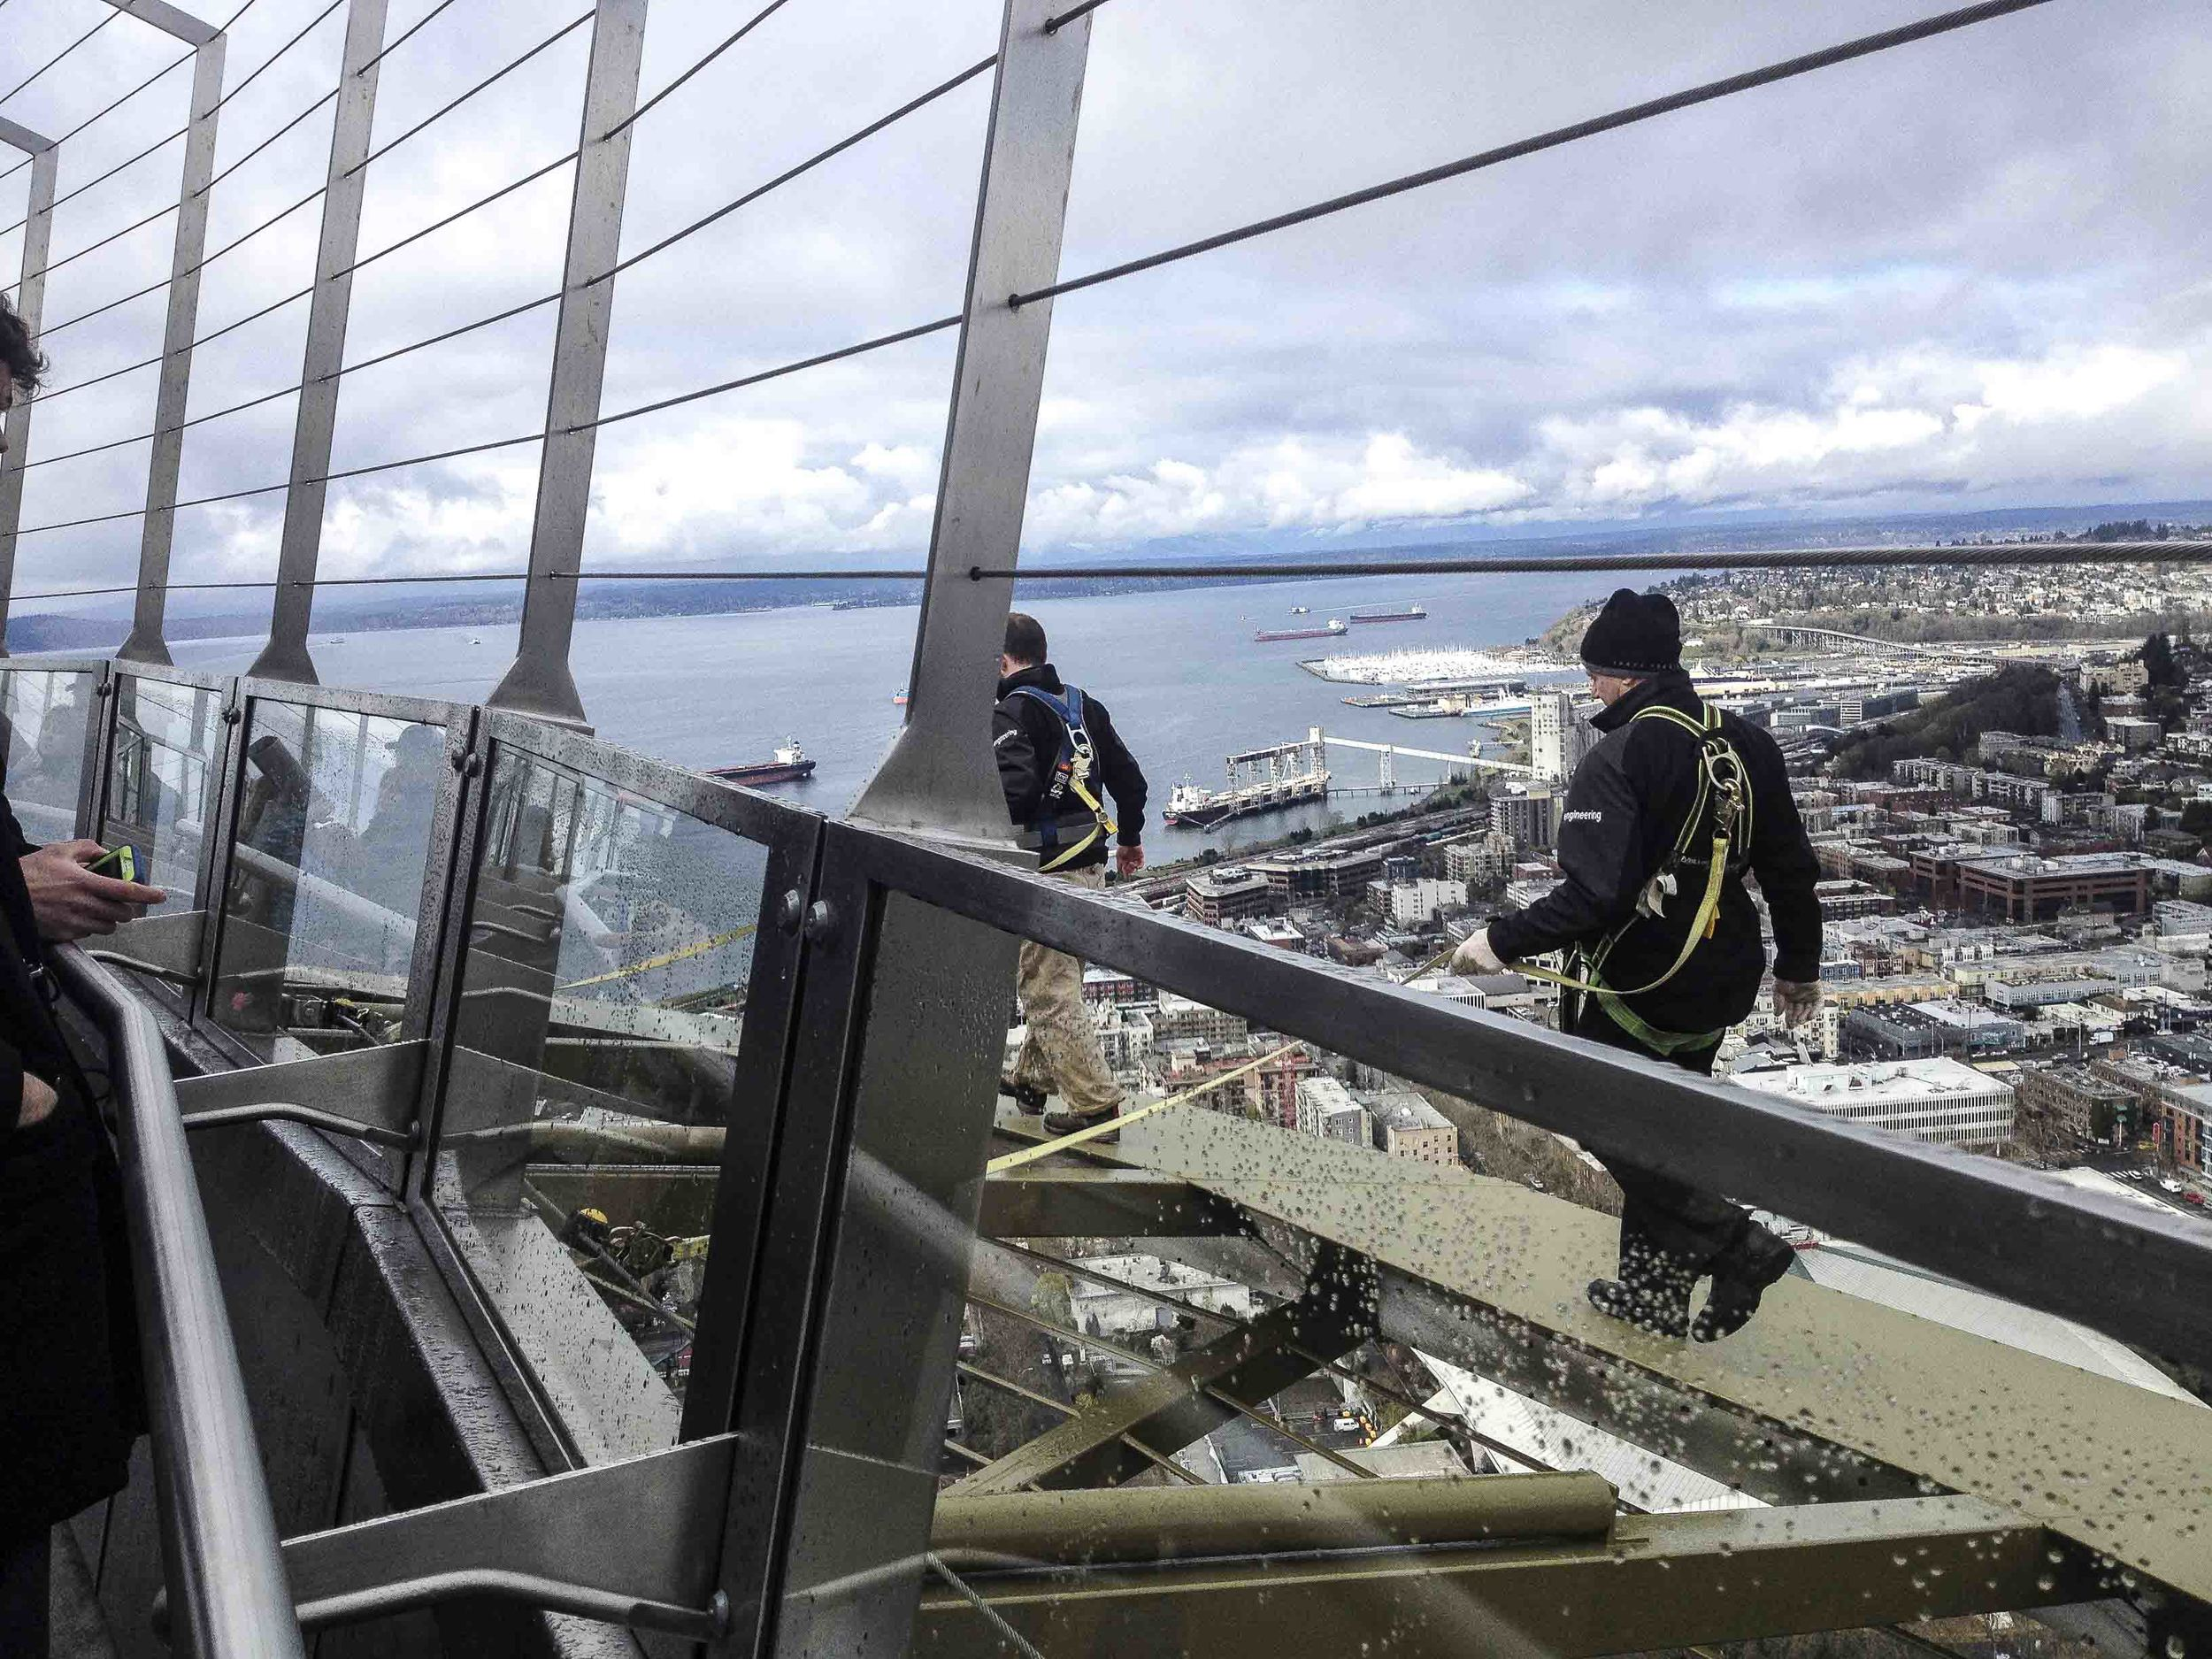 """We could not have done this without Matt and Val.The Space Needle Engineering Staff were the heroes of this operation, going out on the Space Needle """"Halo"""" to install and adjust the 20 GoPro cameras. The most popular tourist questions we're, """"Are you gonna bungee jump?"""" or my favorite """"Why are they wearing dress shoes?"""""""